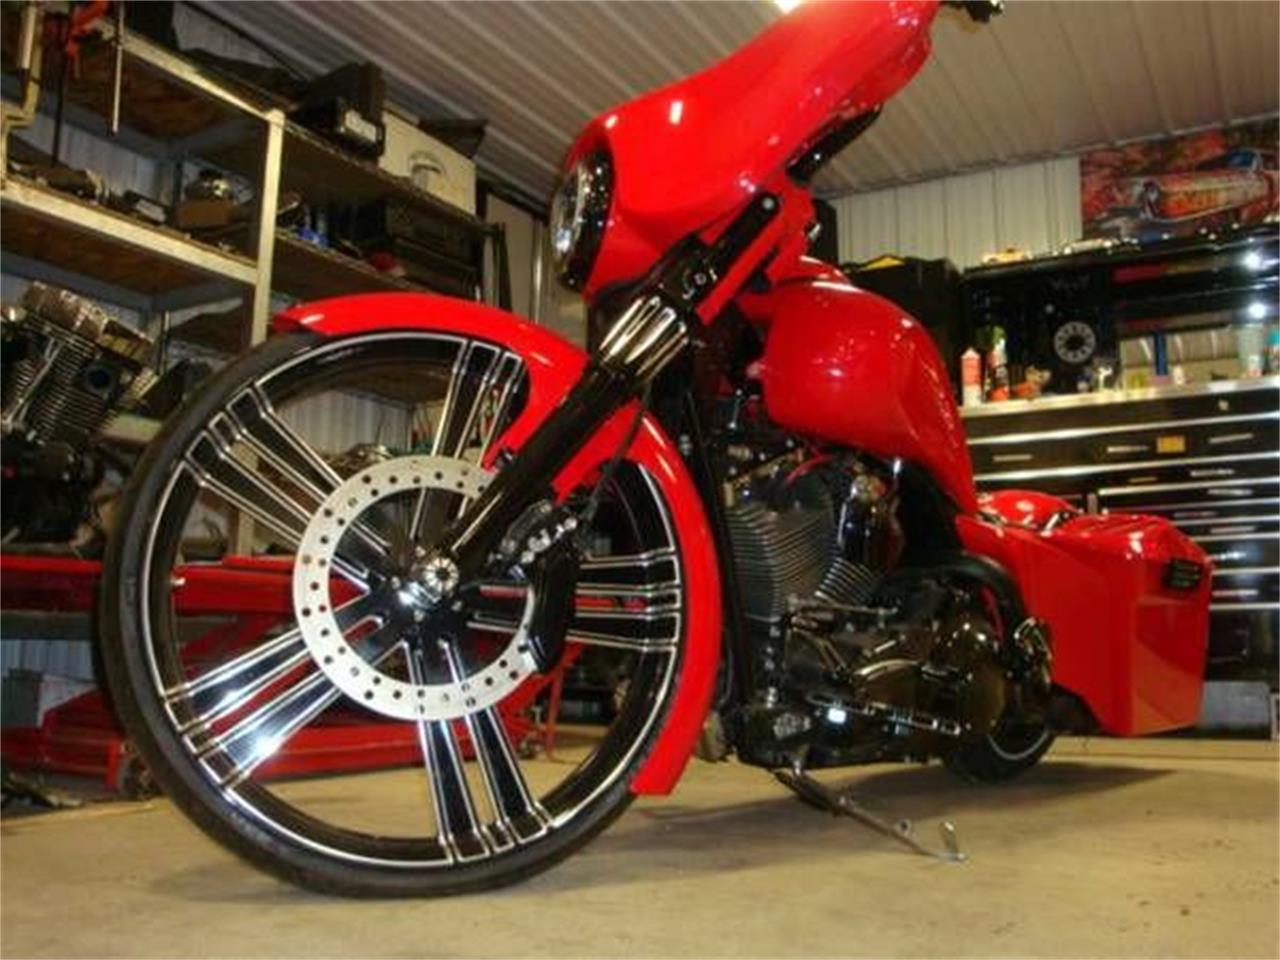 2017 Harley-Davidson Motorcycle (CC-1124148) for sale in Cadillac, Michigan